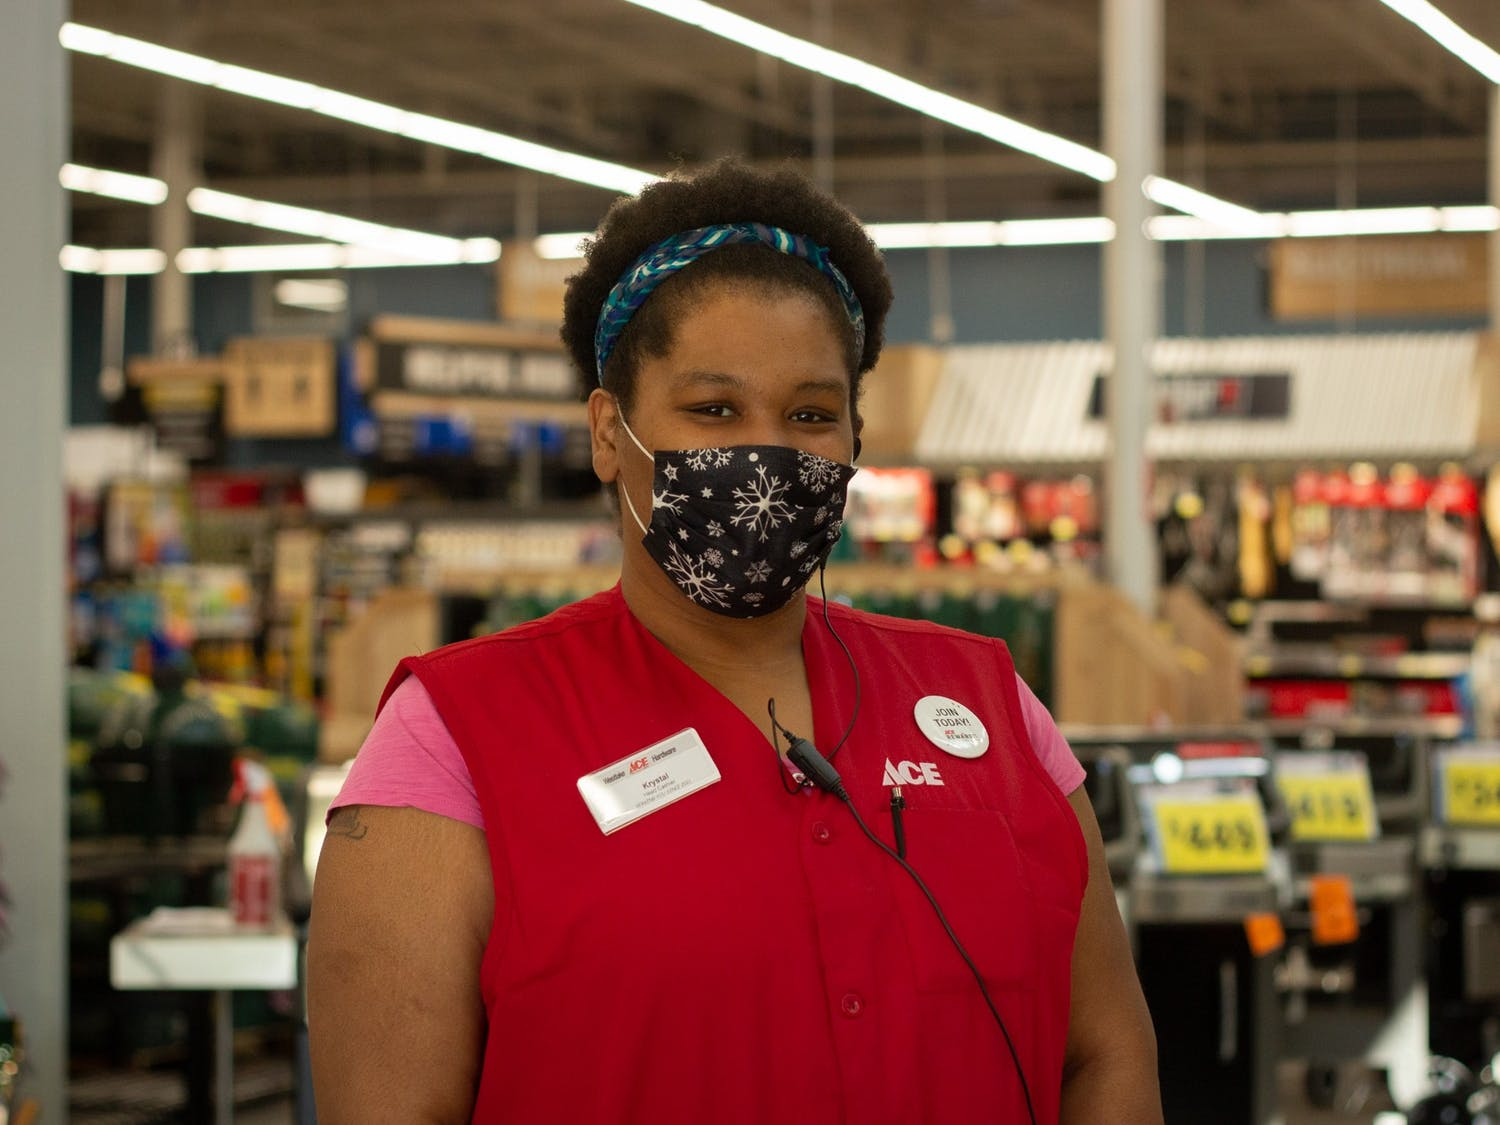 Krystal L., 37, is  the head cashier of the newly opened Westlake Ace Hardware in Chapel Hill, NC on Wednesday, April 7th, 2021.